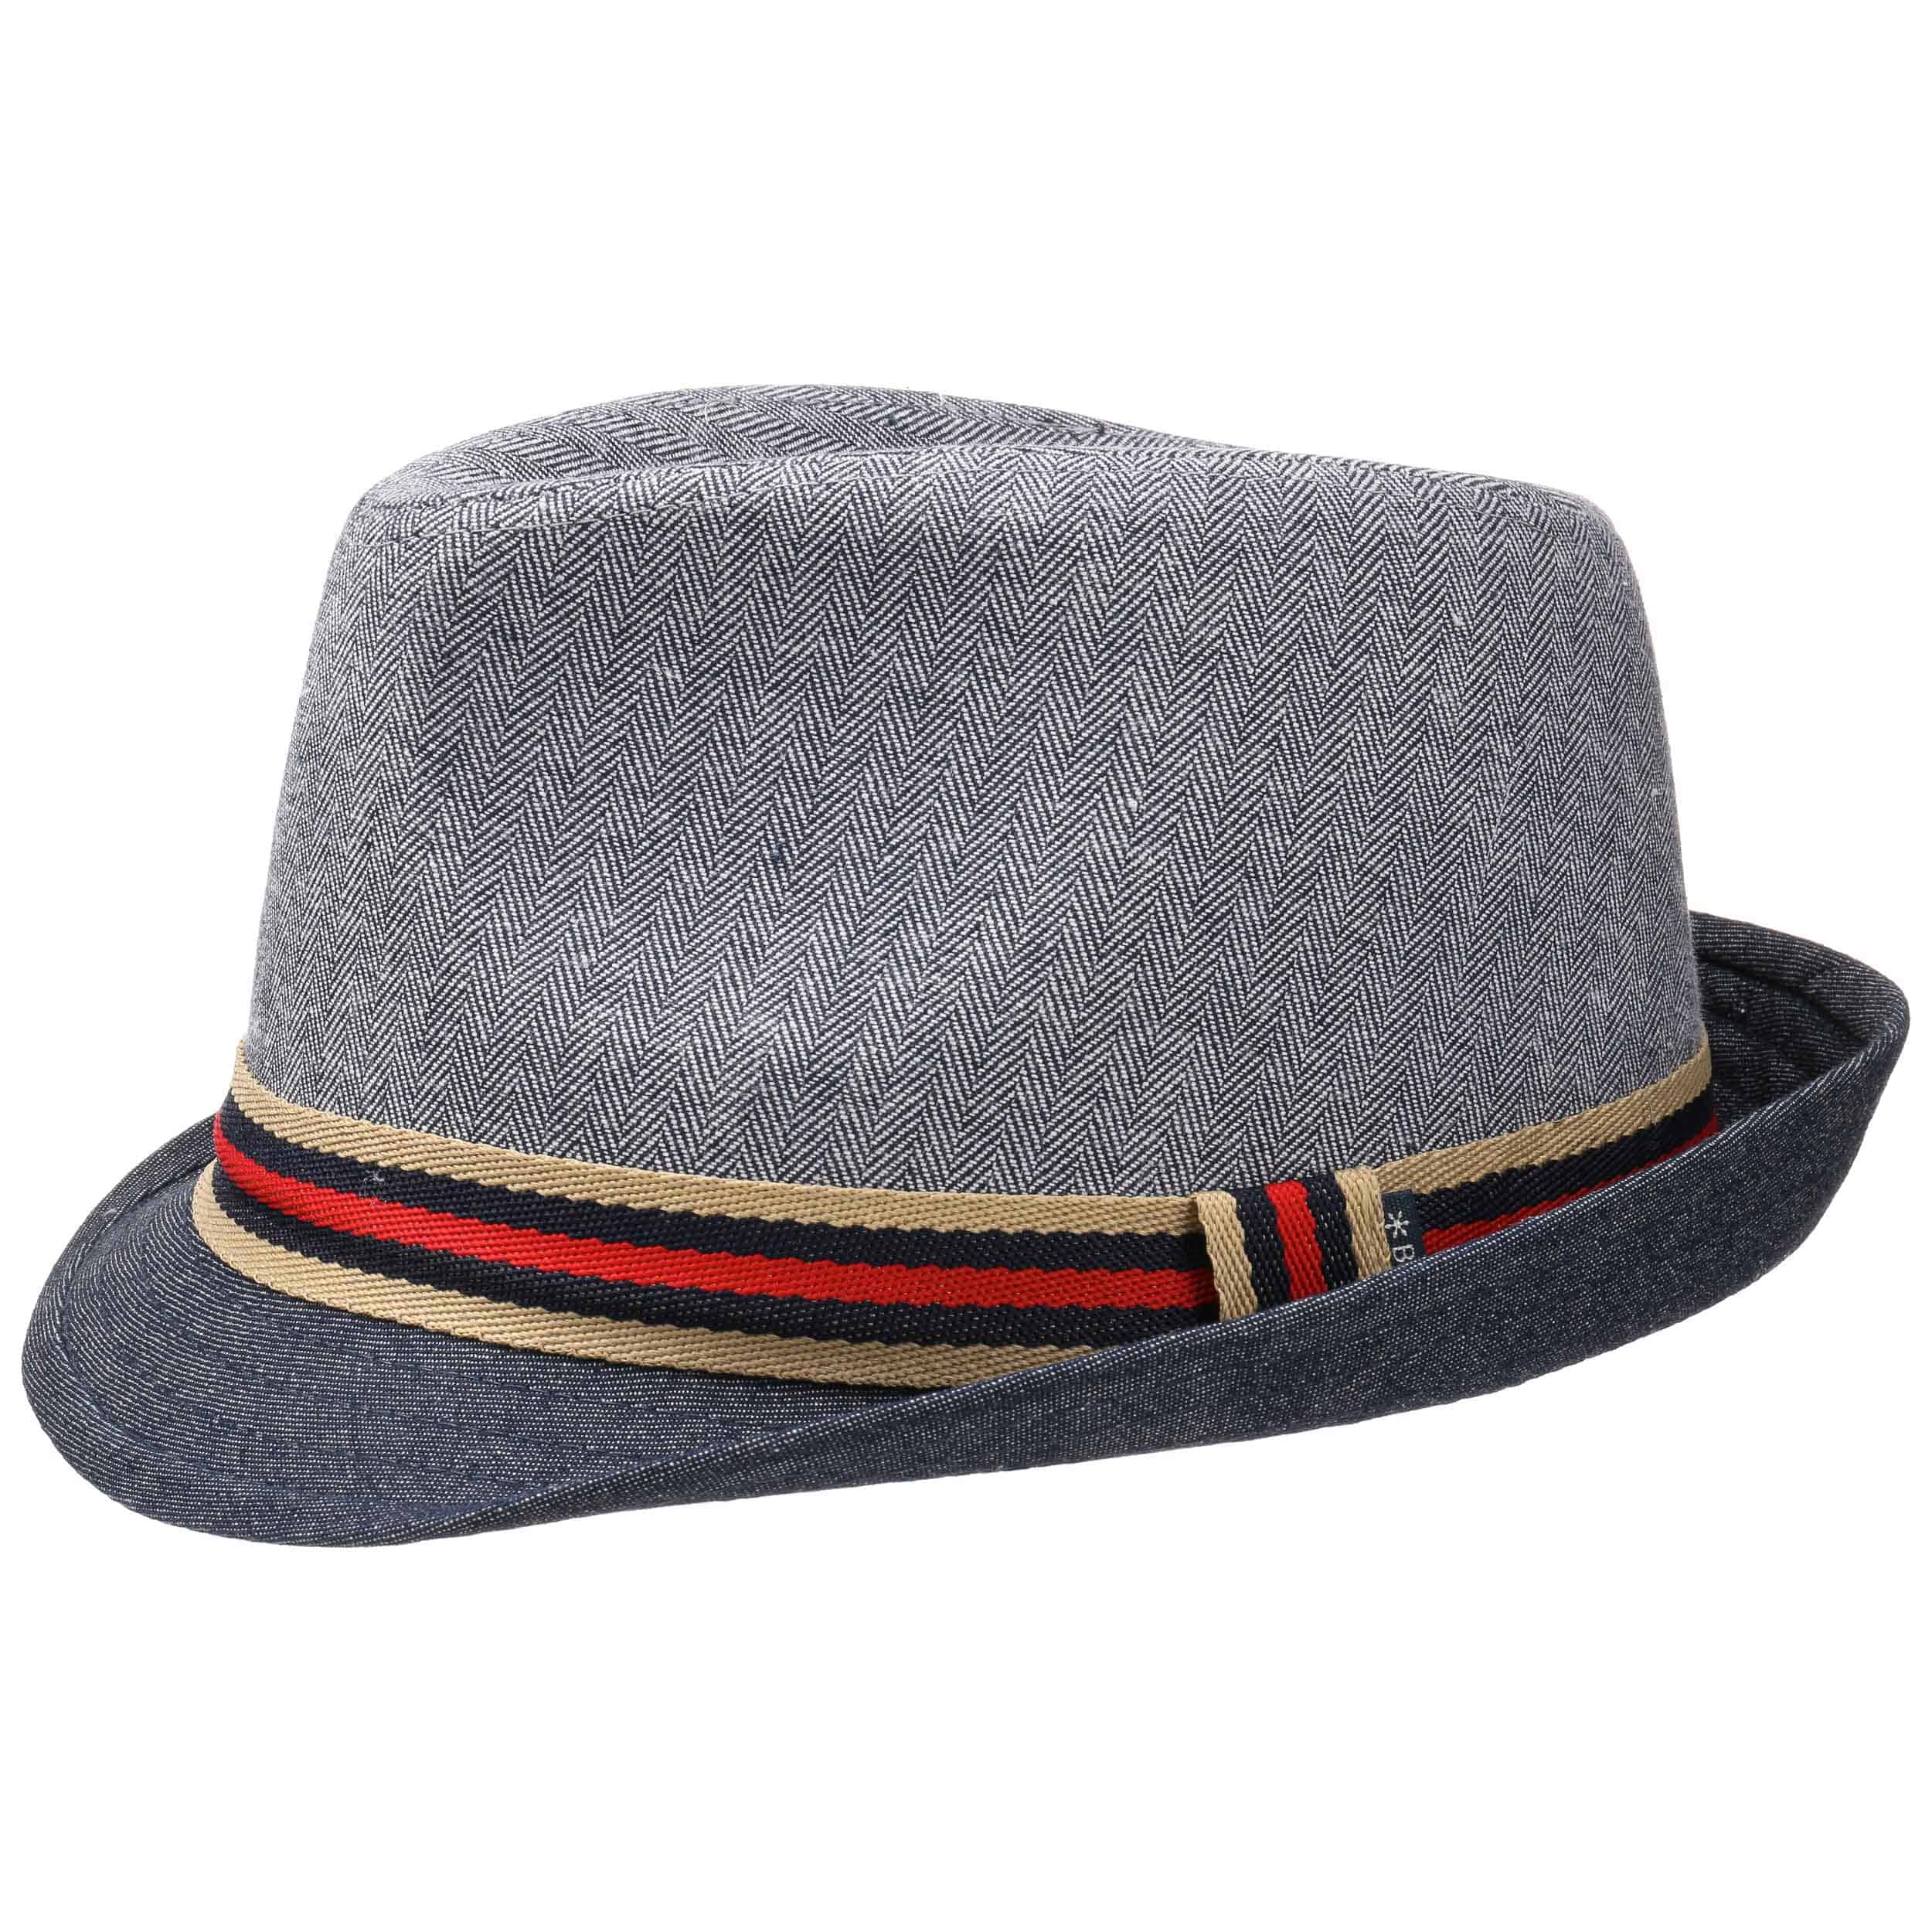 Canza Denim Trilby Cloth Hat by Barts EUR 2999 --u0026gt; Hats caps u0026 beanies shop online ...